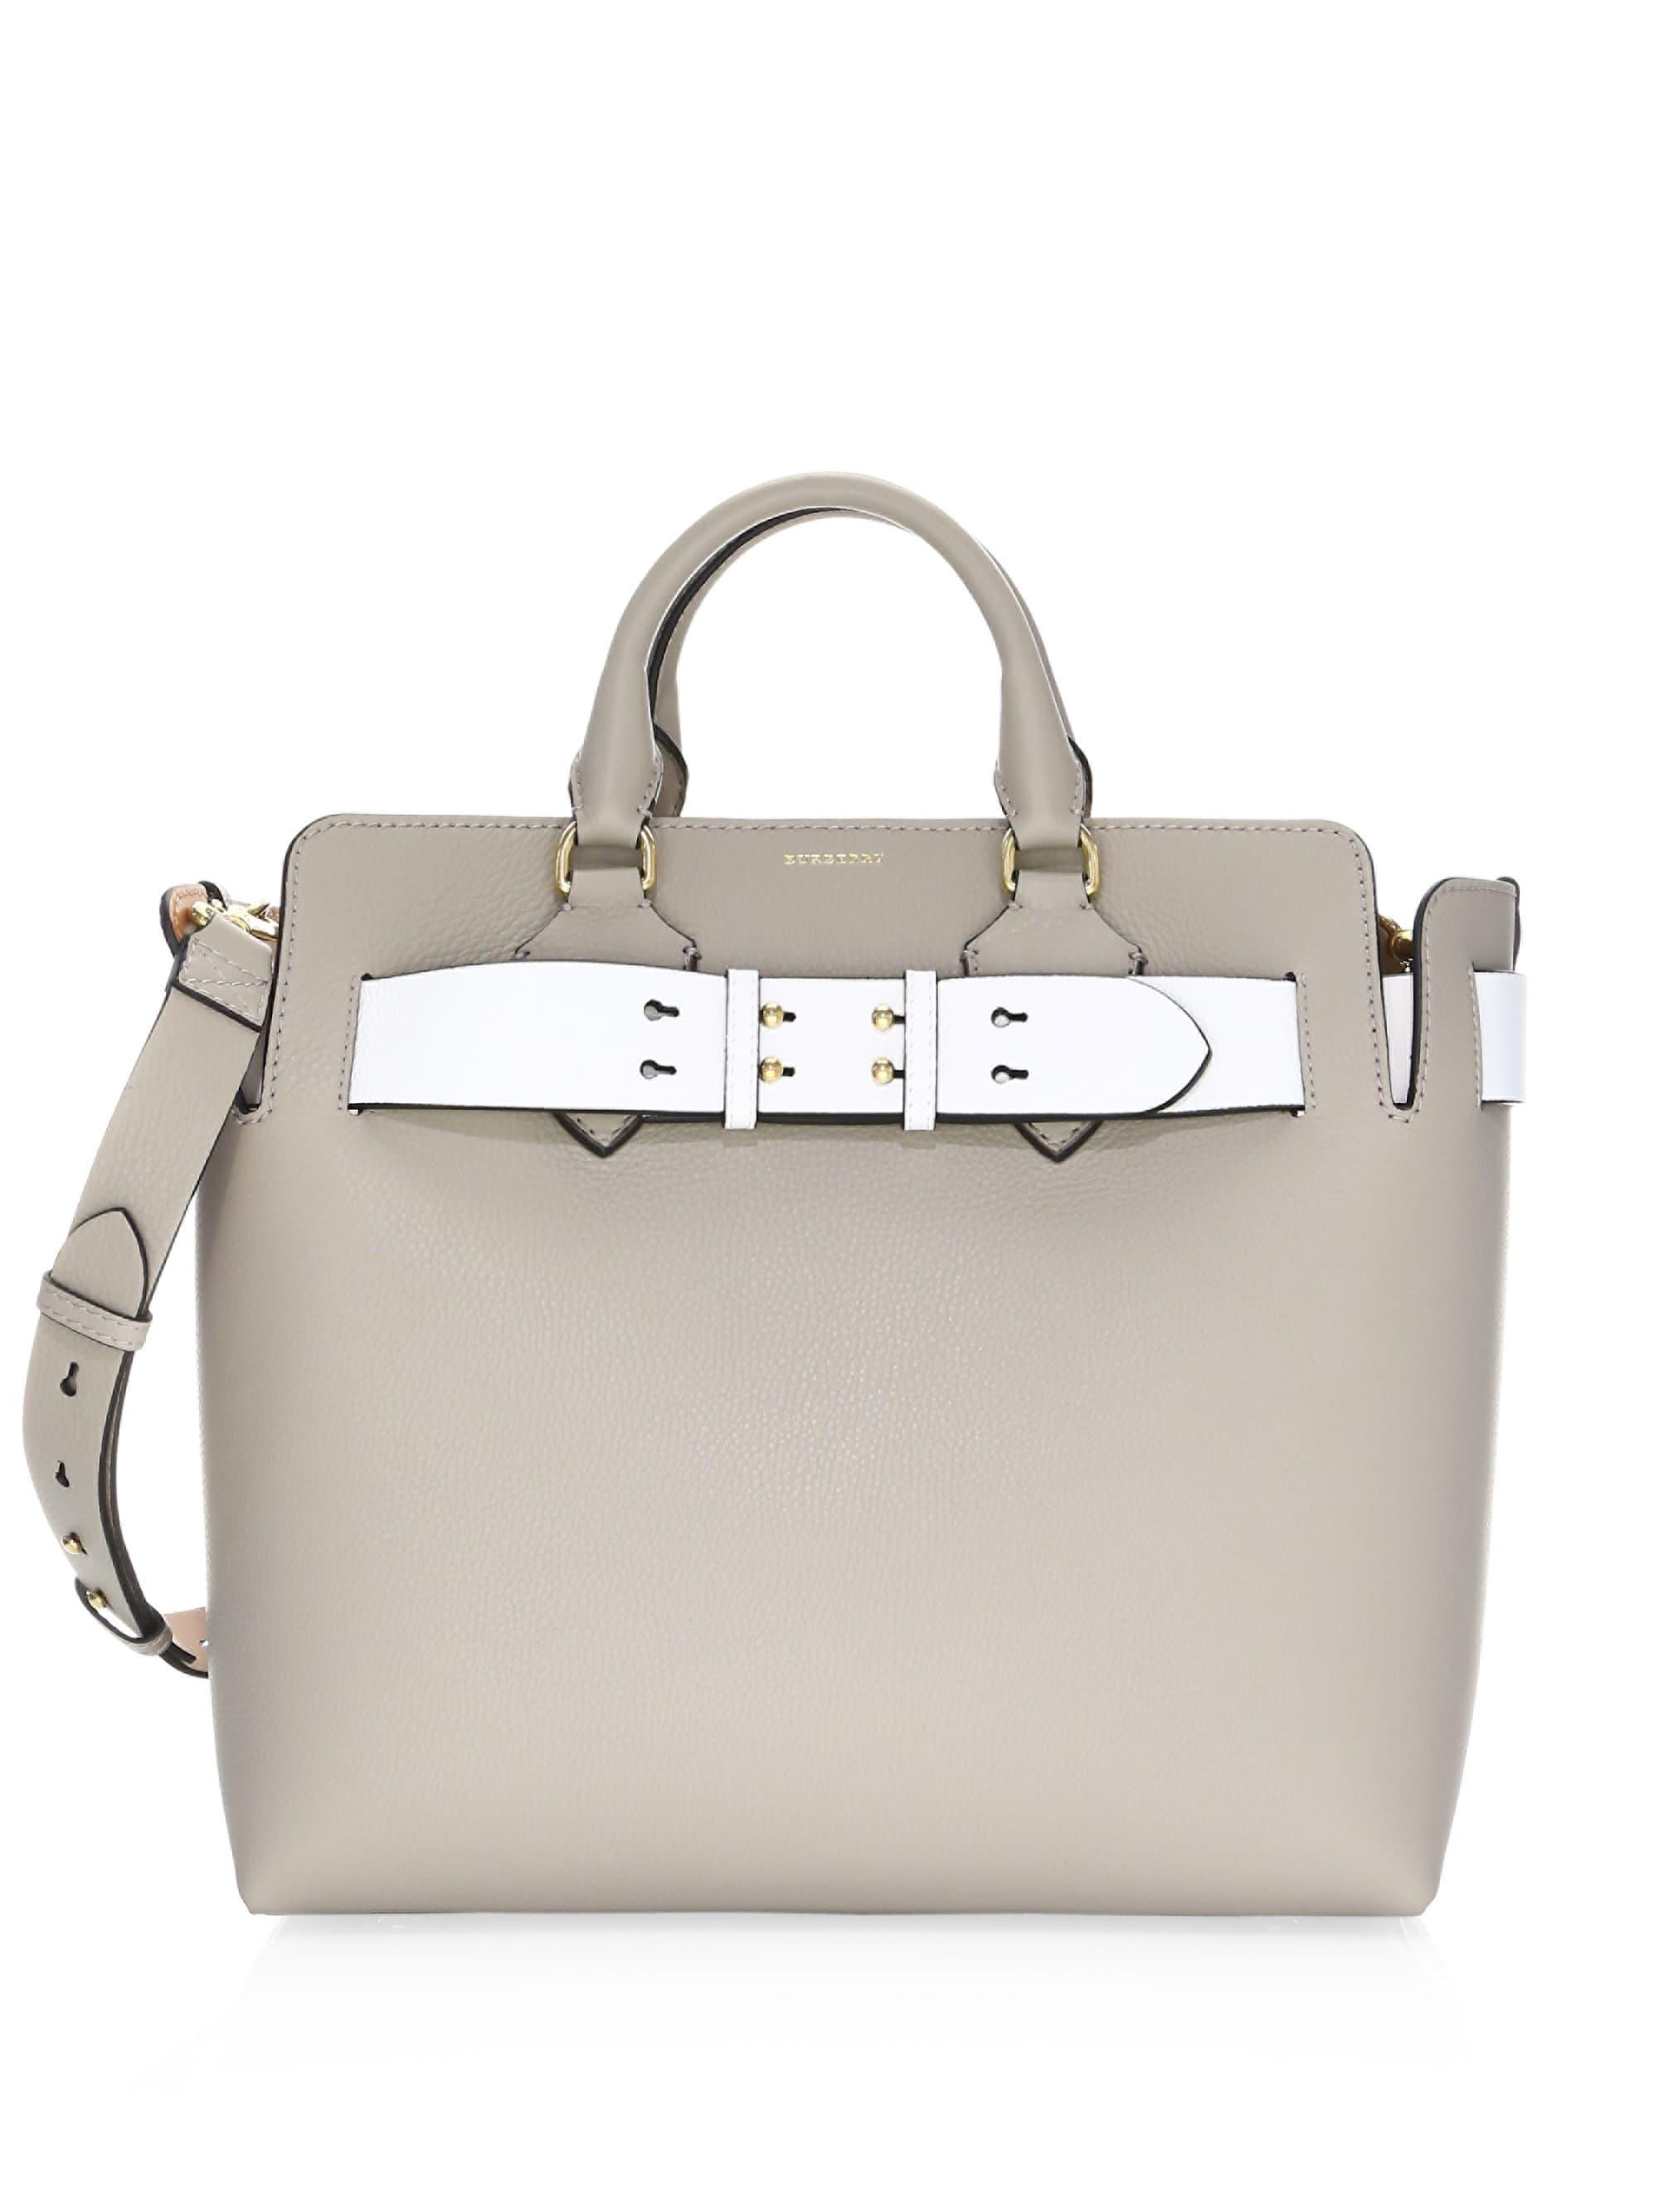 Lyst - Burberry Belt Bag Medium In Mineral Grey Marais Leather in ... e2979d79be76a